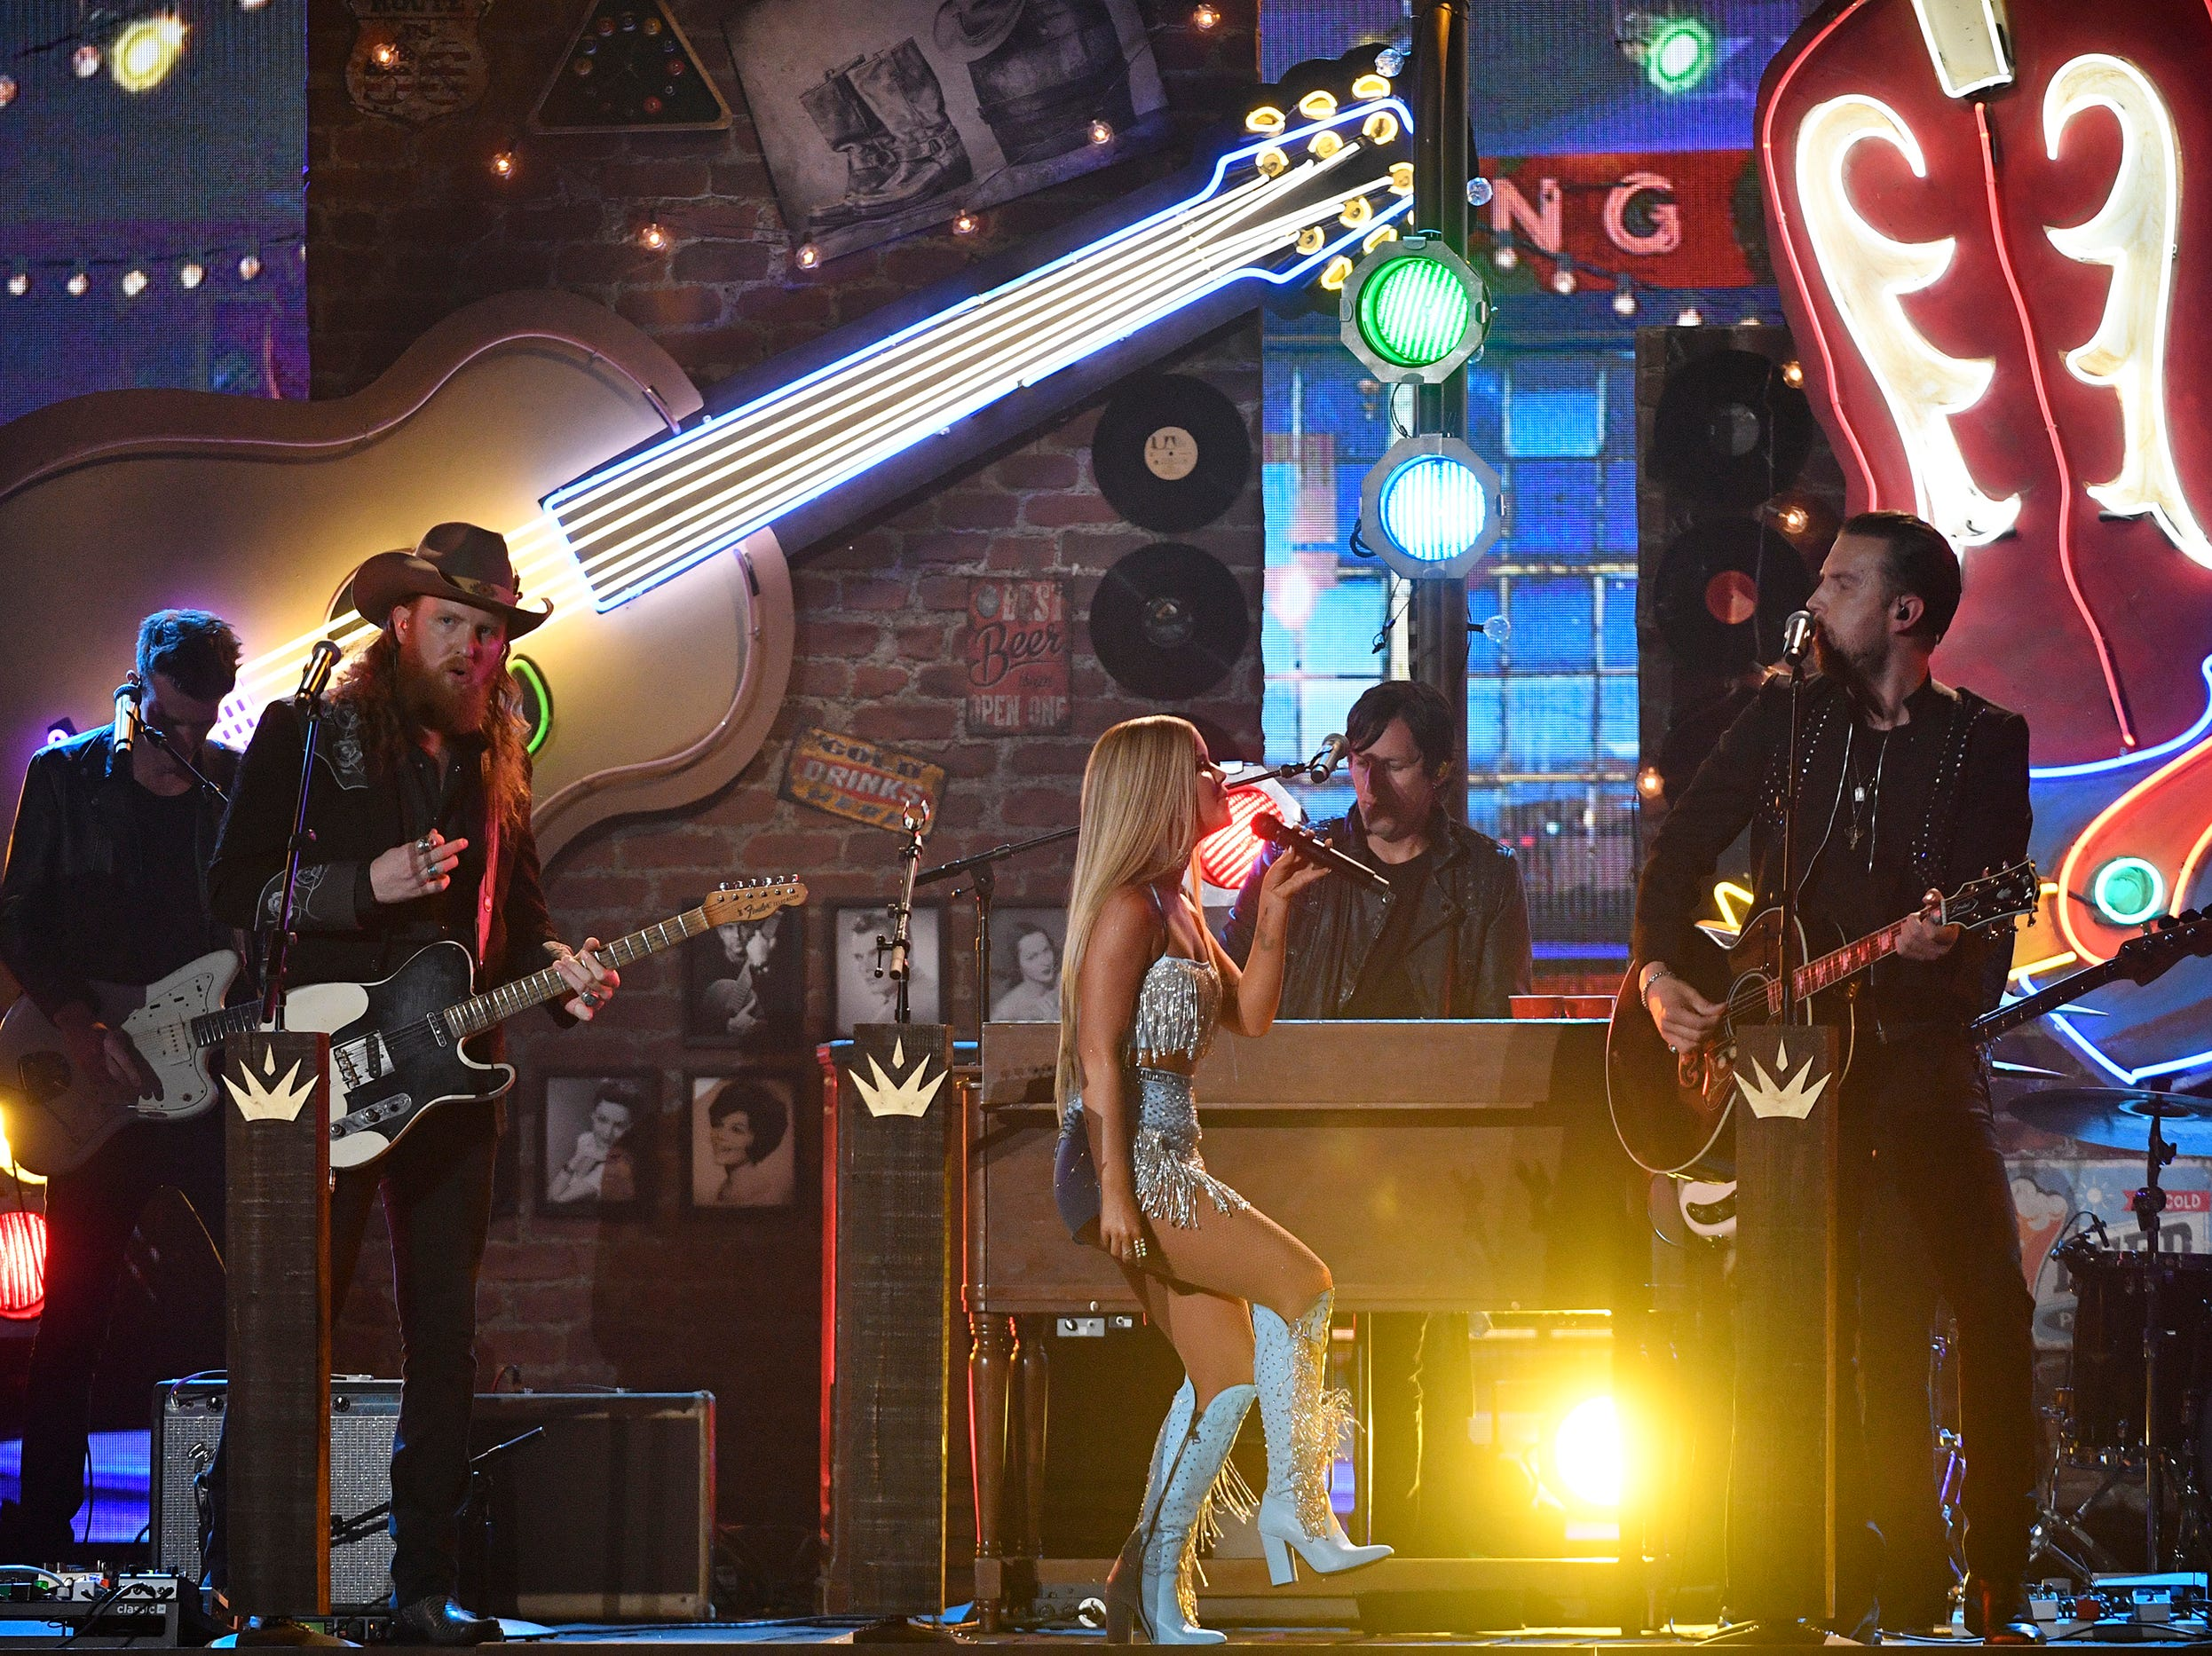 Maren Morris, center, performs with John Osborne, left, and T.J. Osborne of Brothers Osborne, during the 54TH Academy of Country Music Awards Sunday, April 7, 2019, in Las Vegas, Nev.